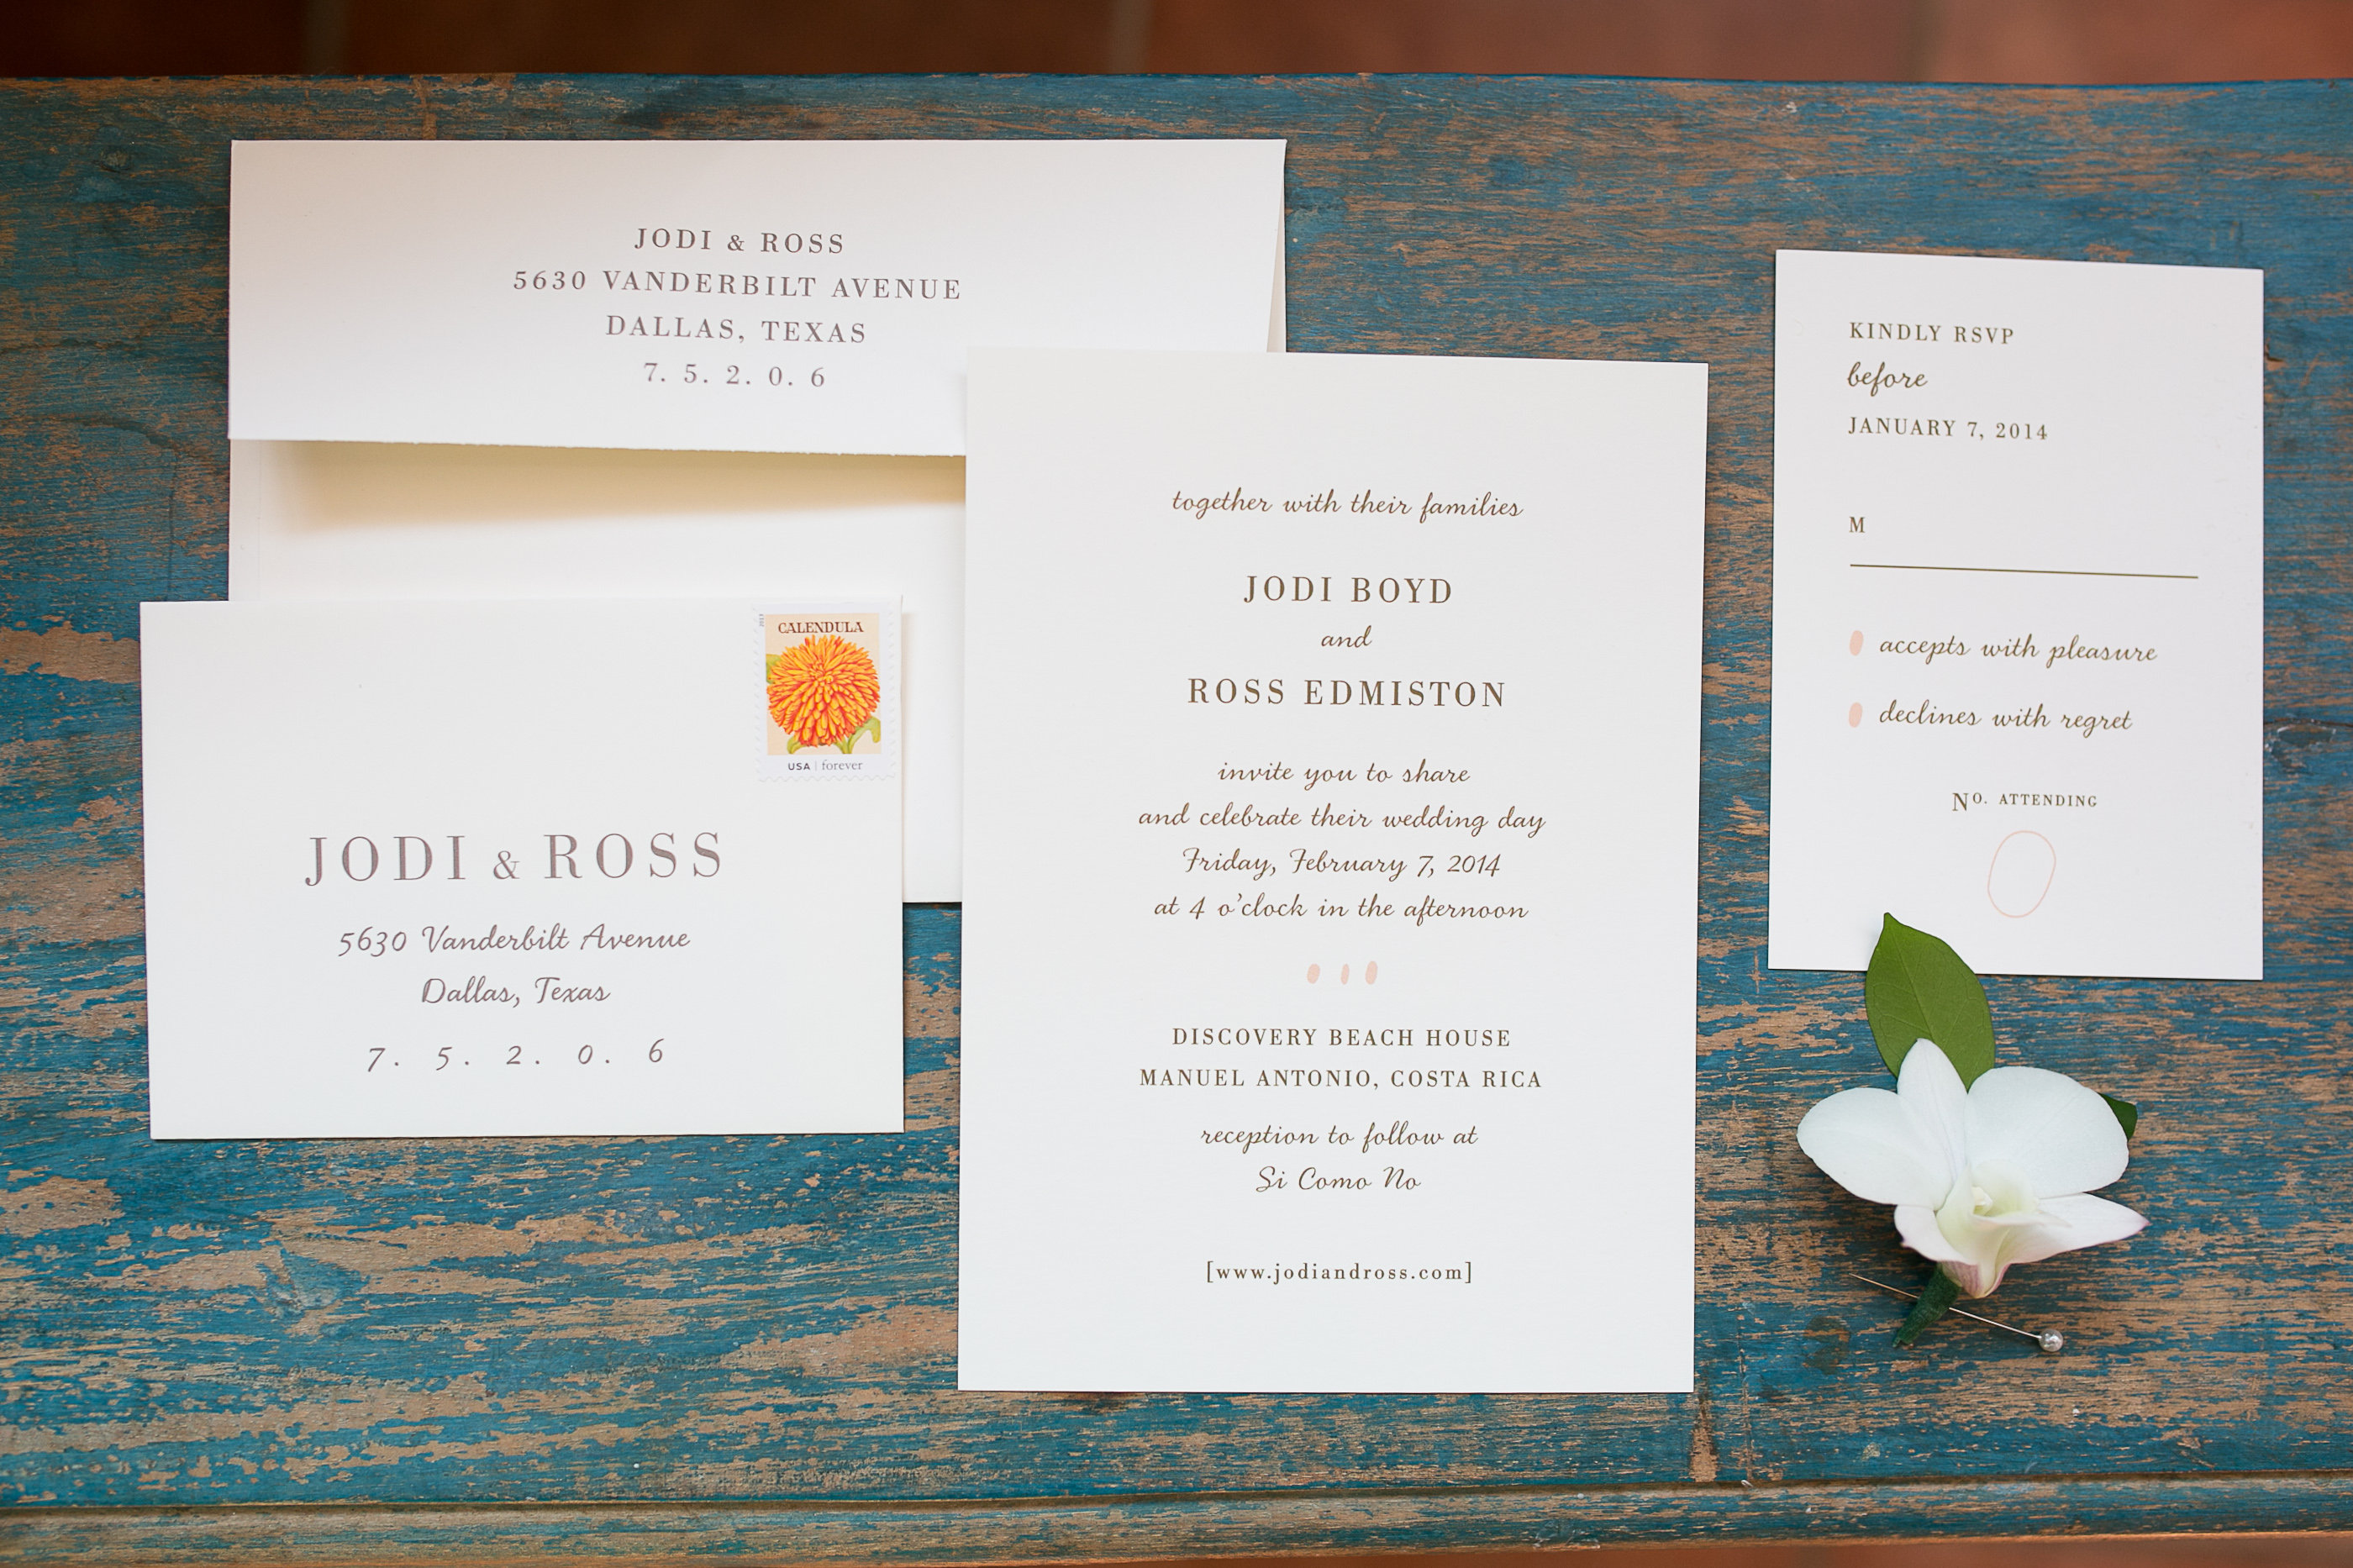 Real Weddings – Jodi and Ross at Discovery Beach House & Si Como No ...